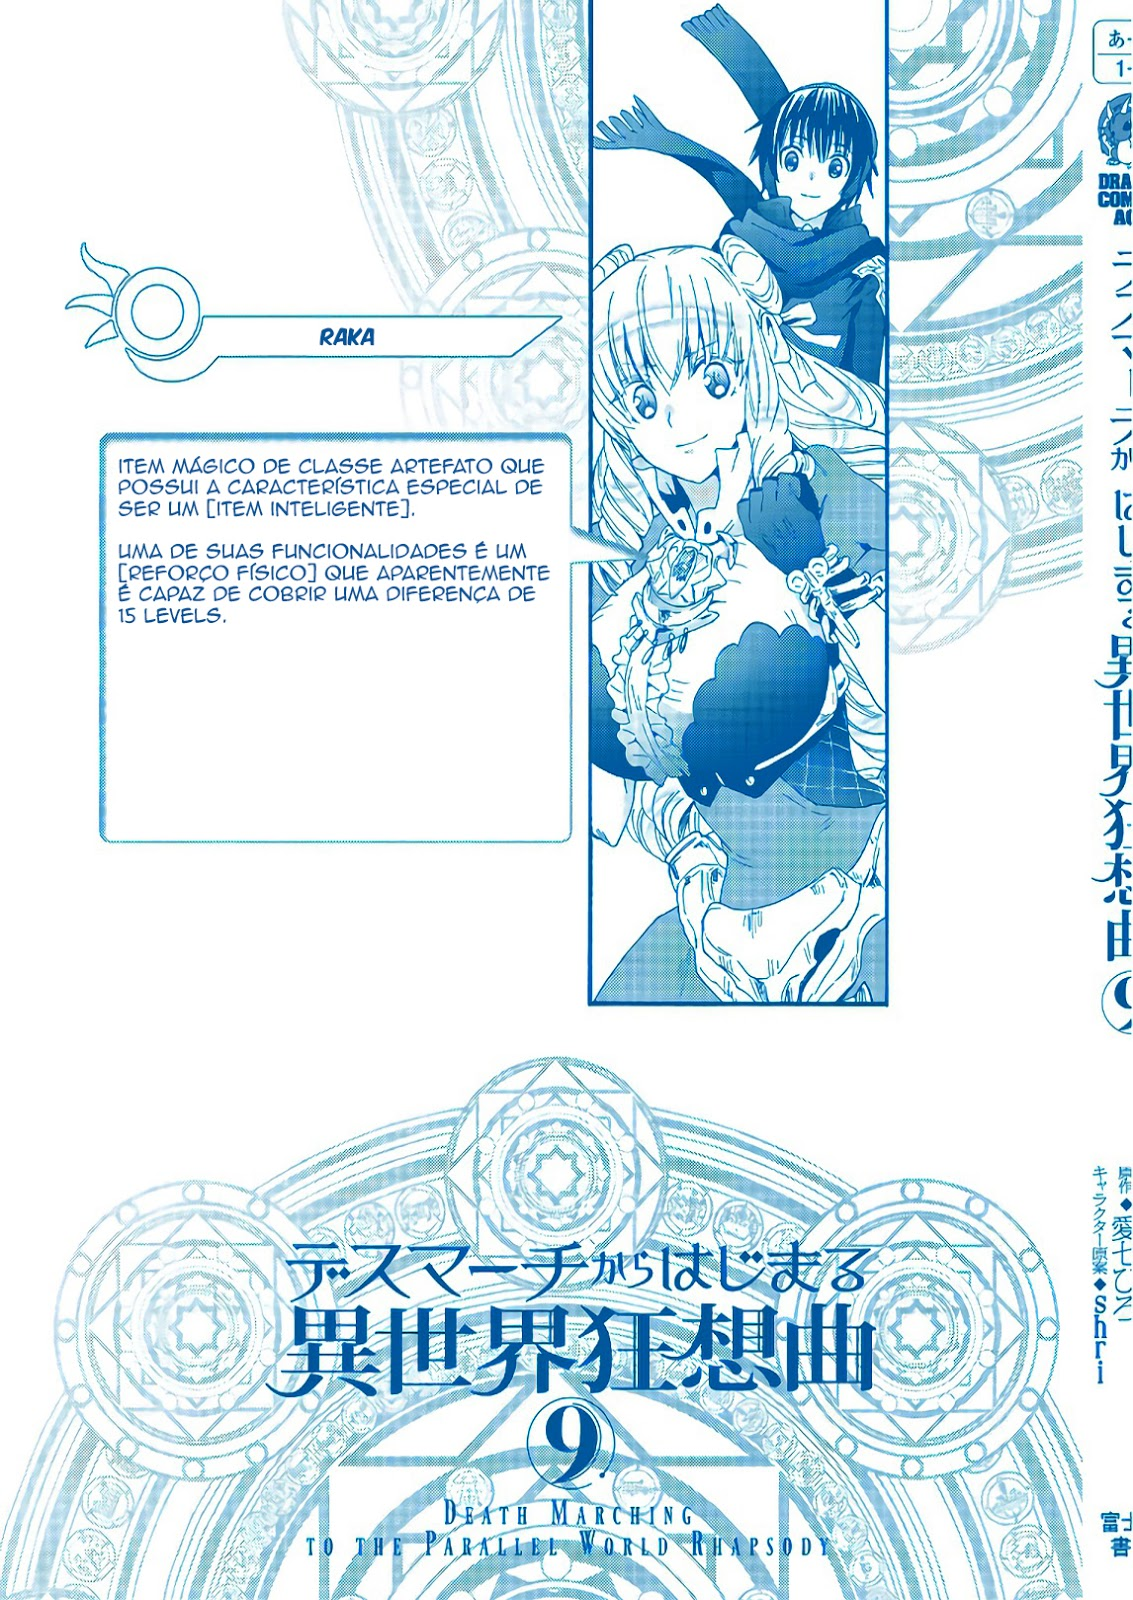 Death March to the Parallel World Rhapsody Mangá Capítulo 57.5_12